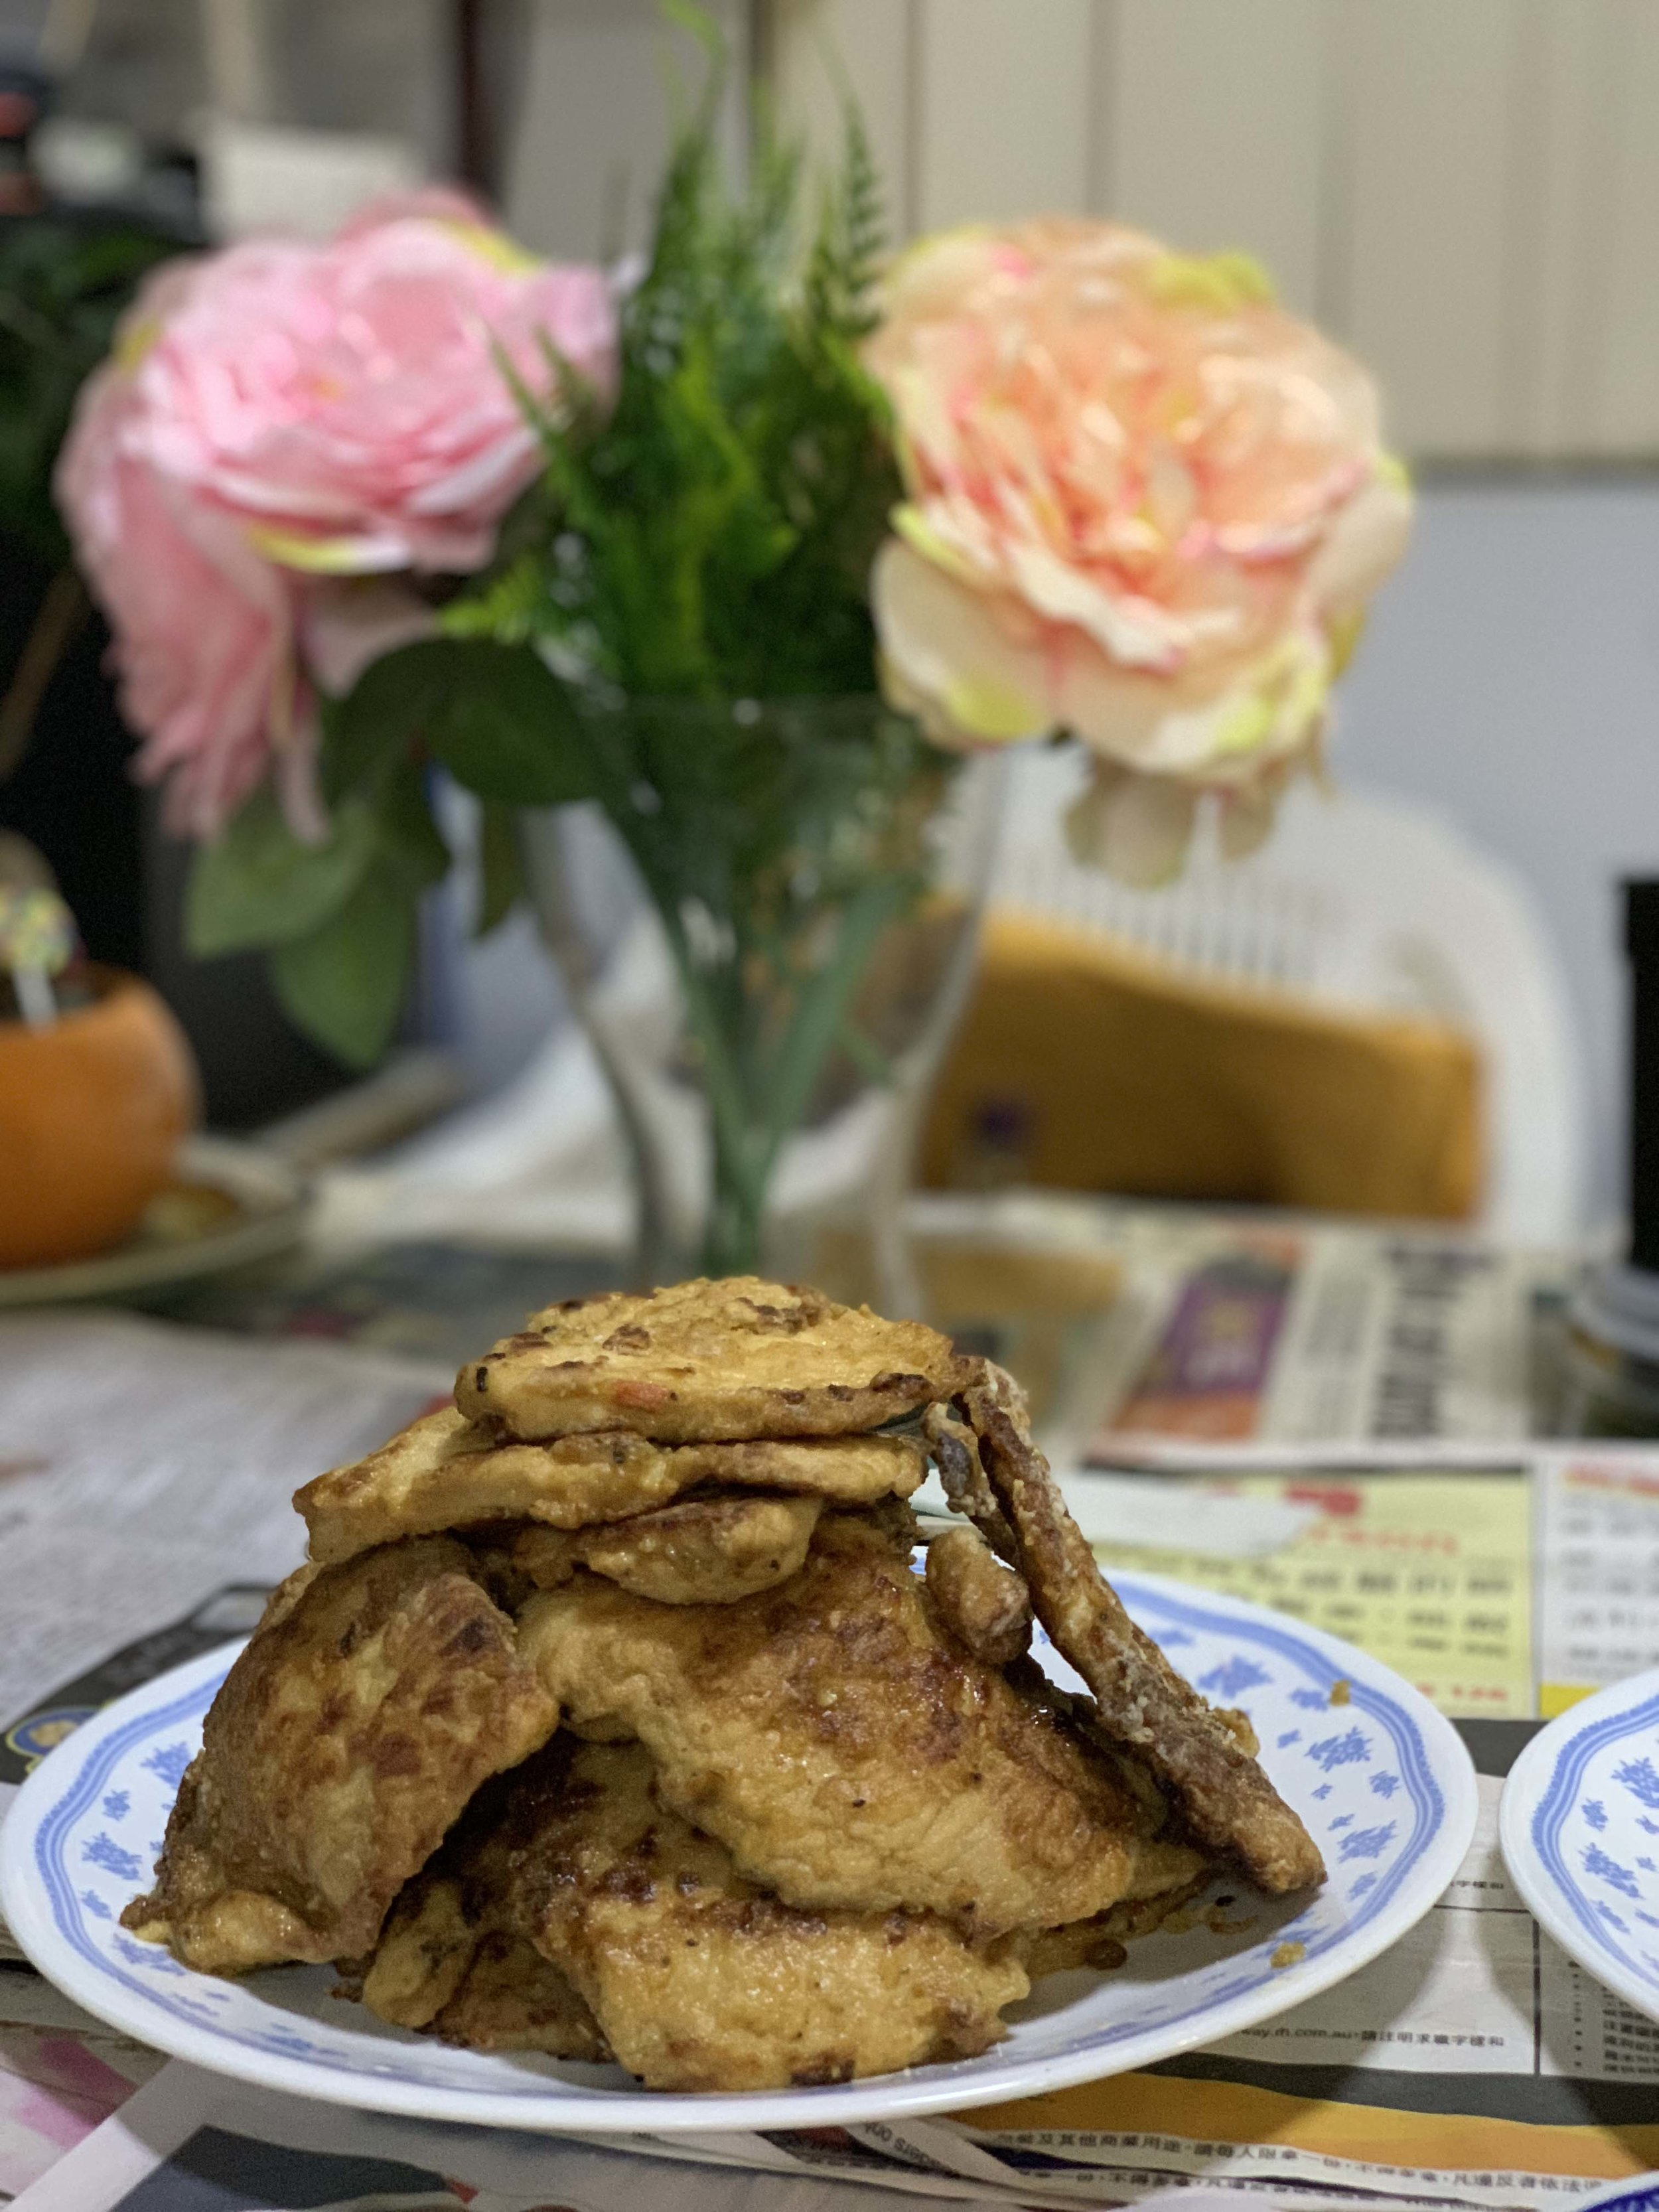 My dad and I started competing who could take a better photo of my mum's fried chicken.